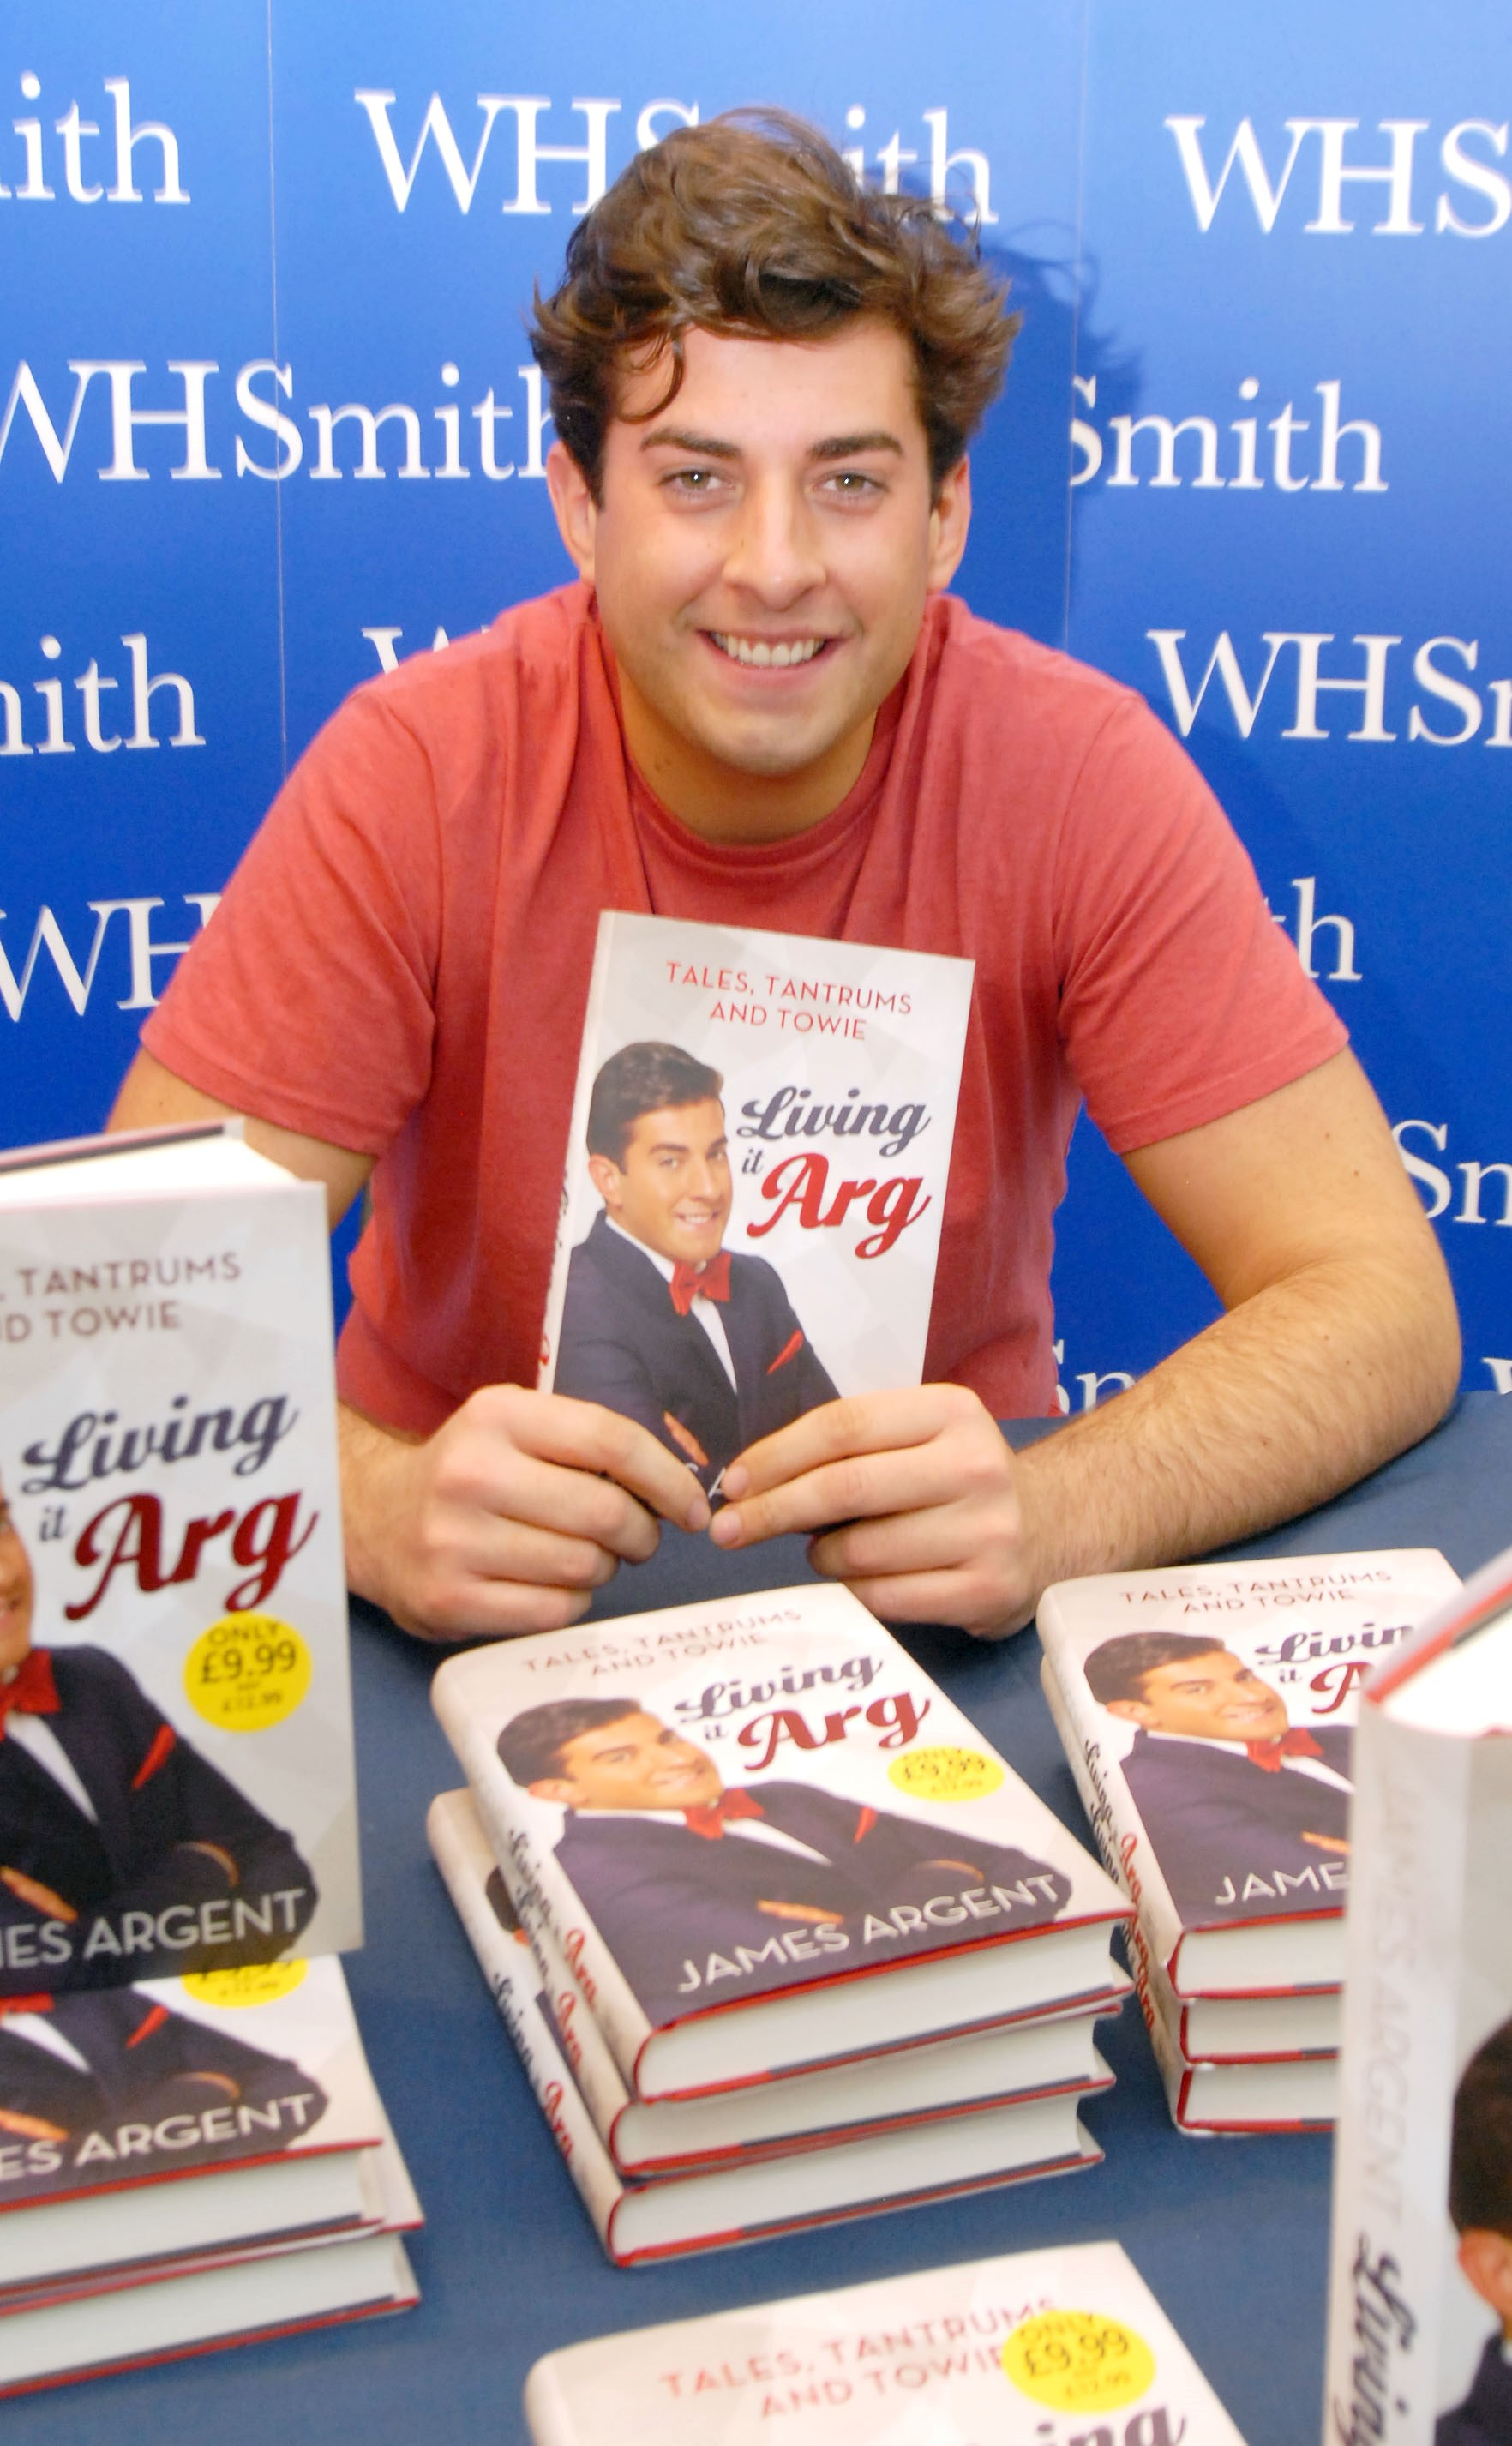 James 'Arg' Argent with his book.